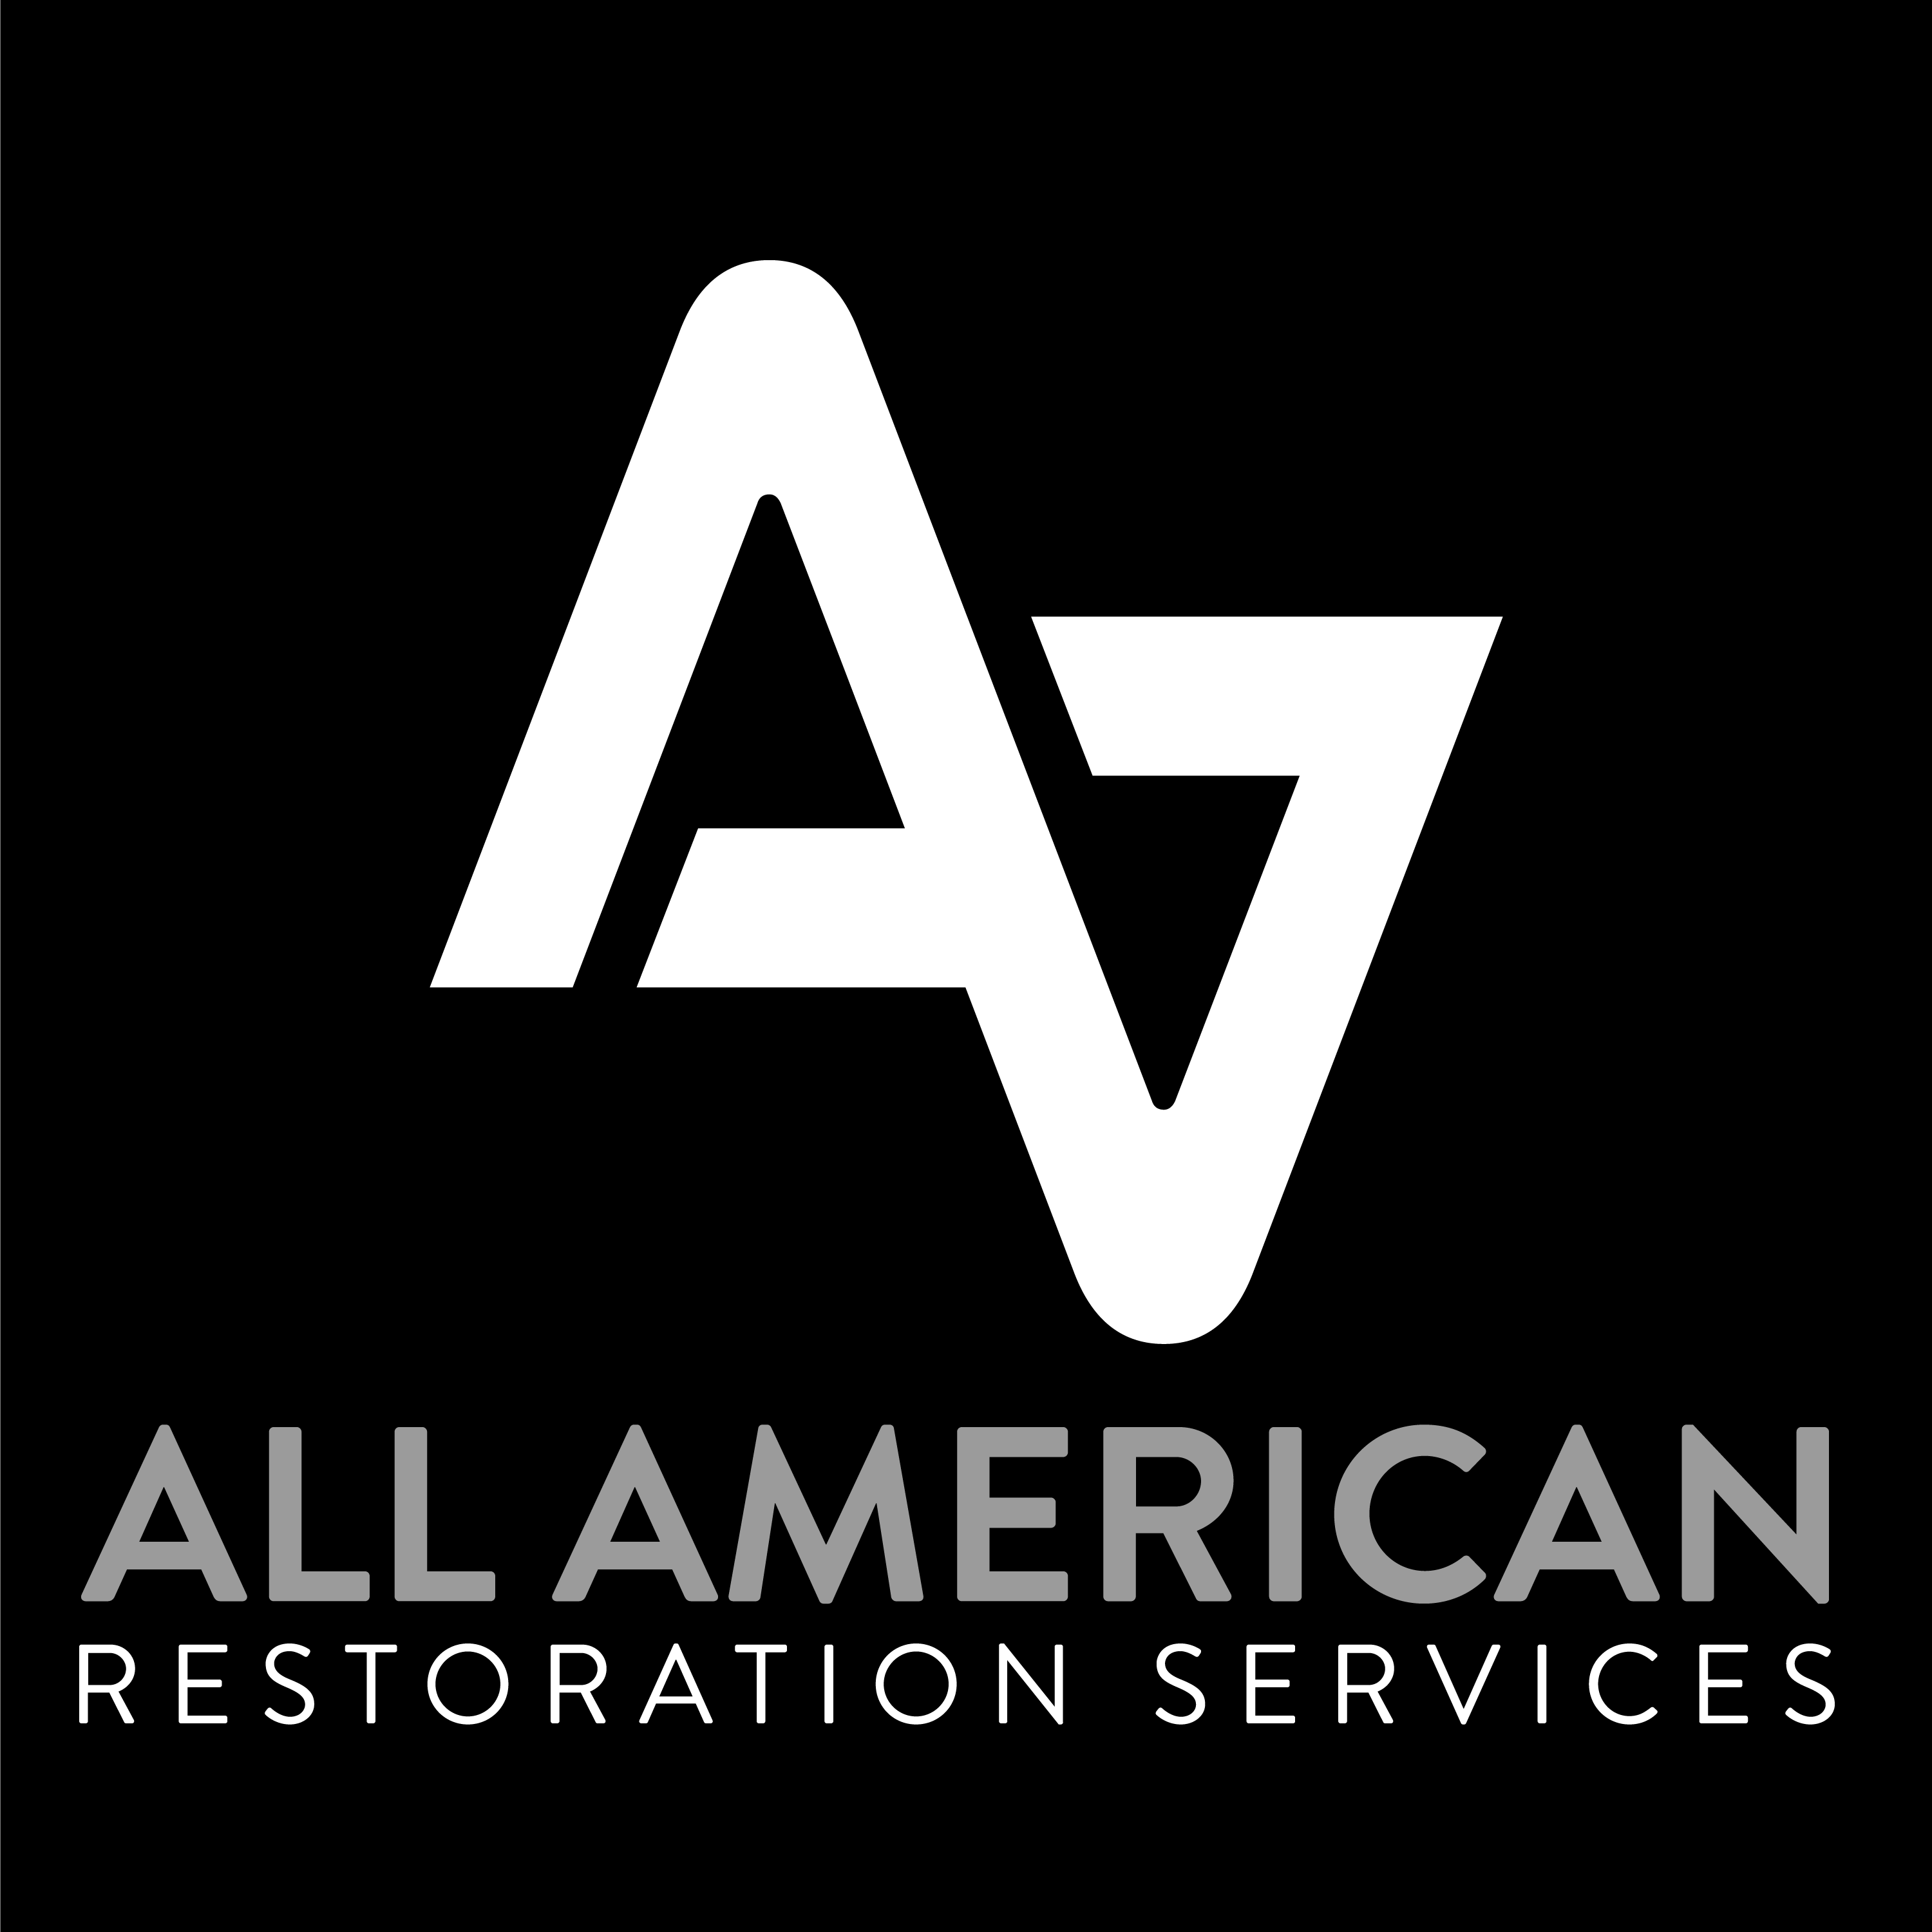 All American Restoration Services